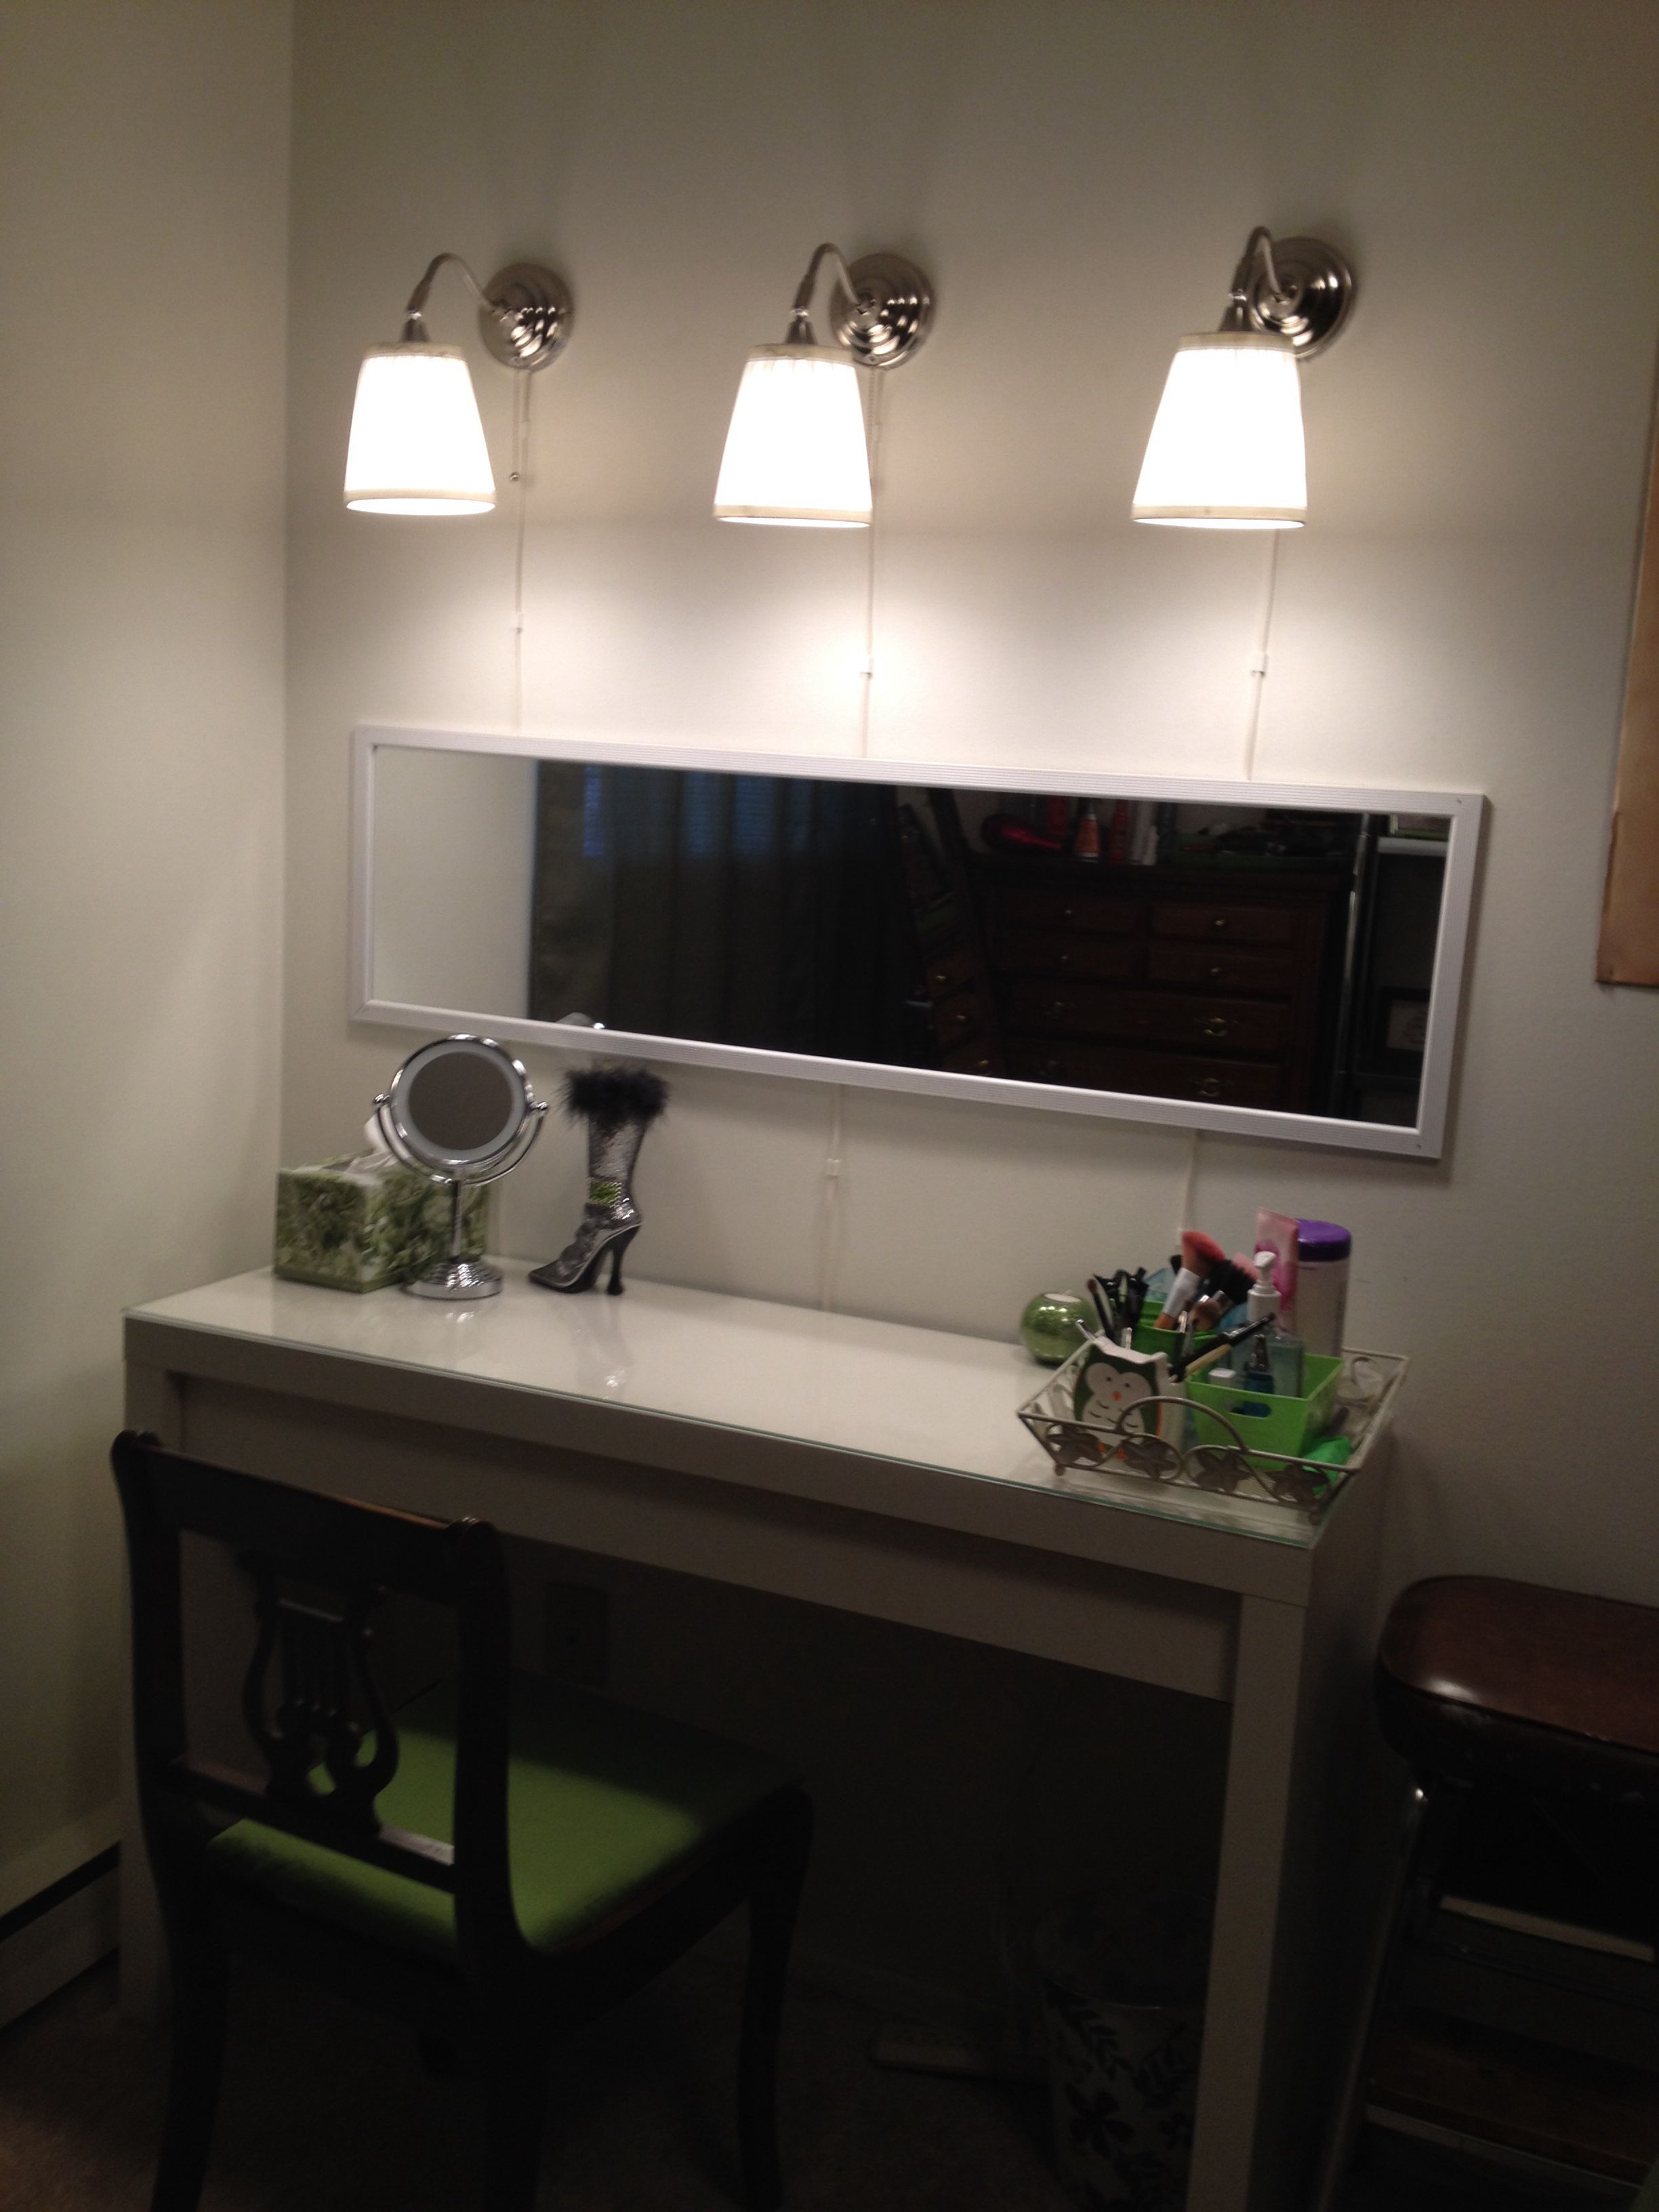 ikea vanity malm dressing table and arstid wall lamps guest